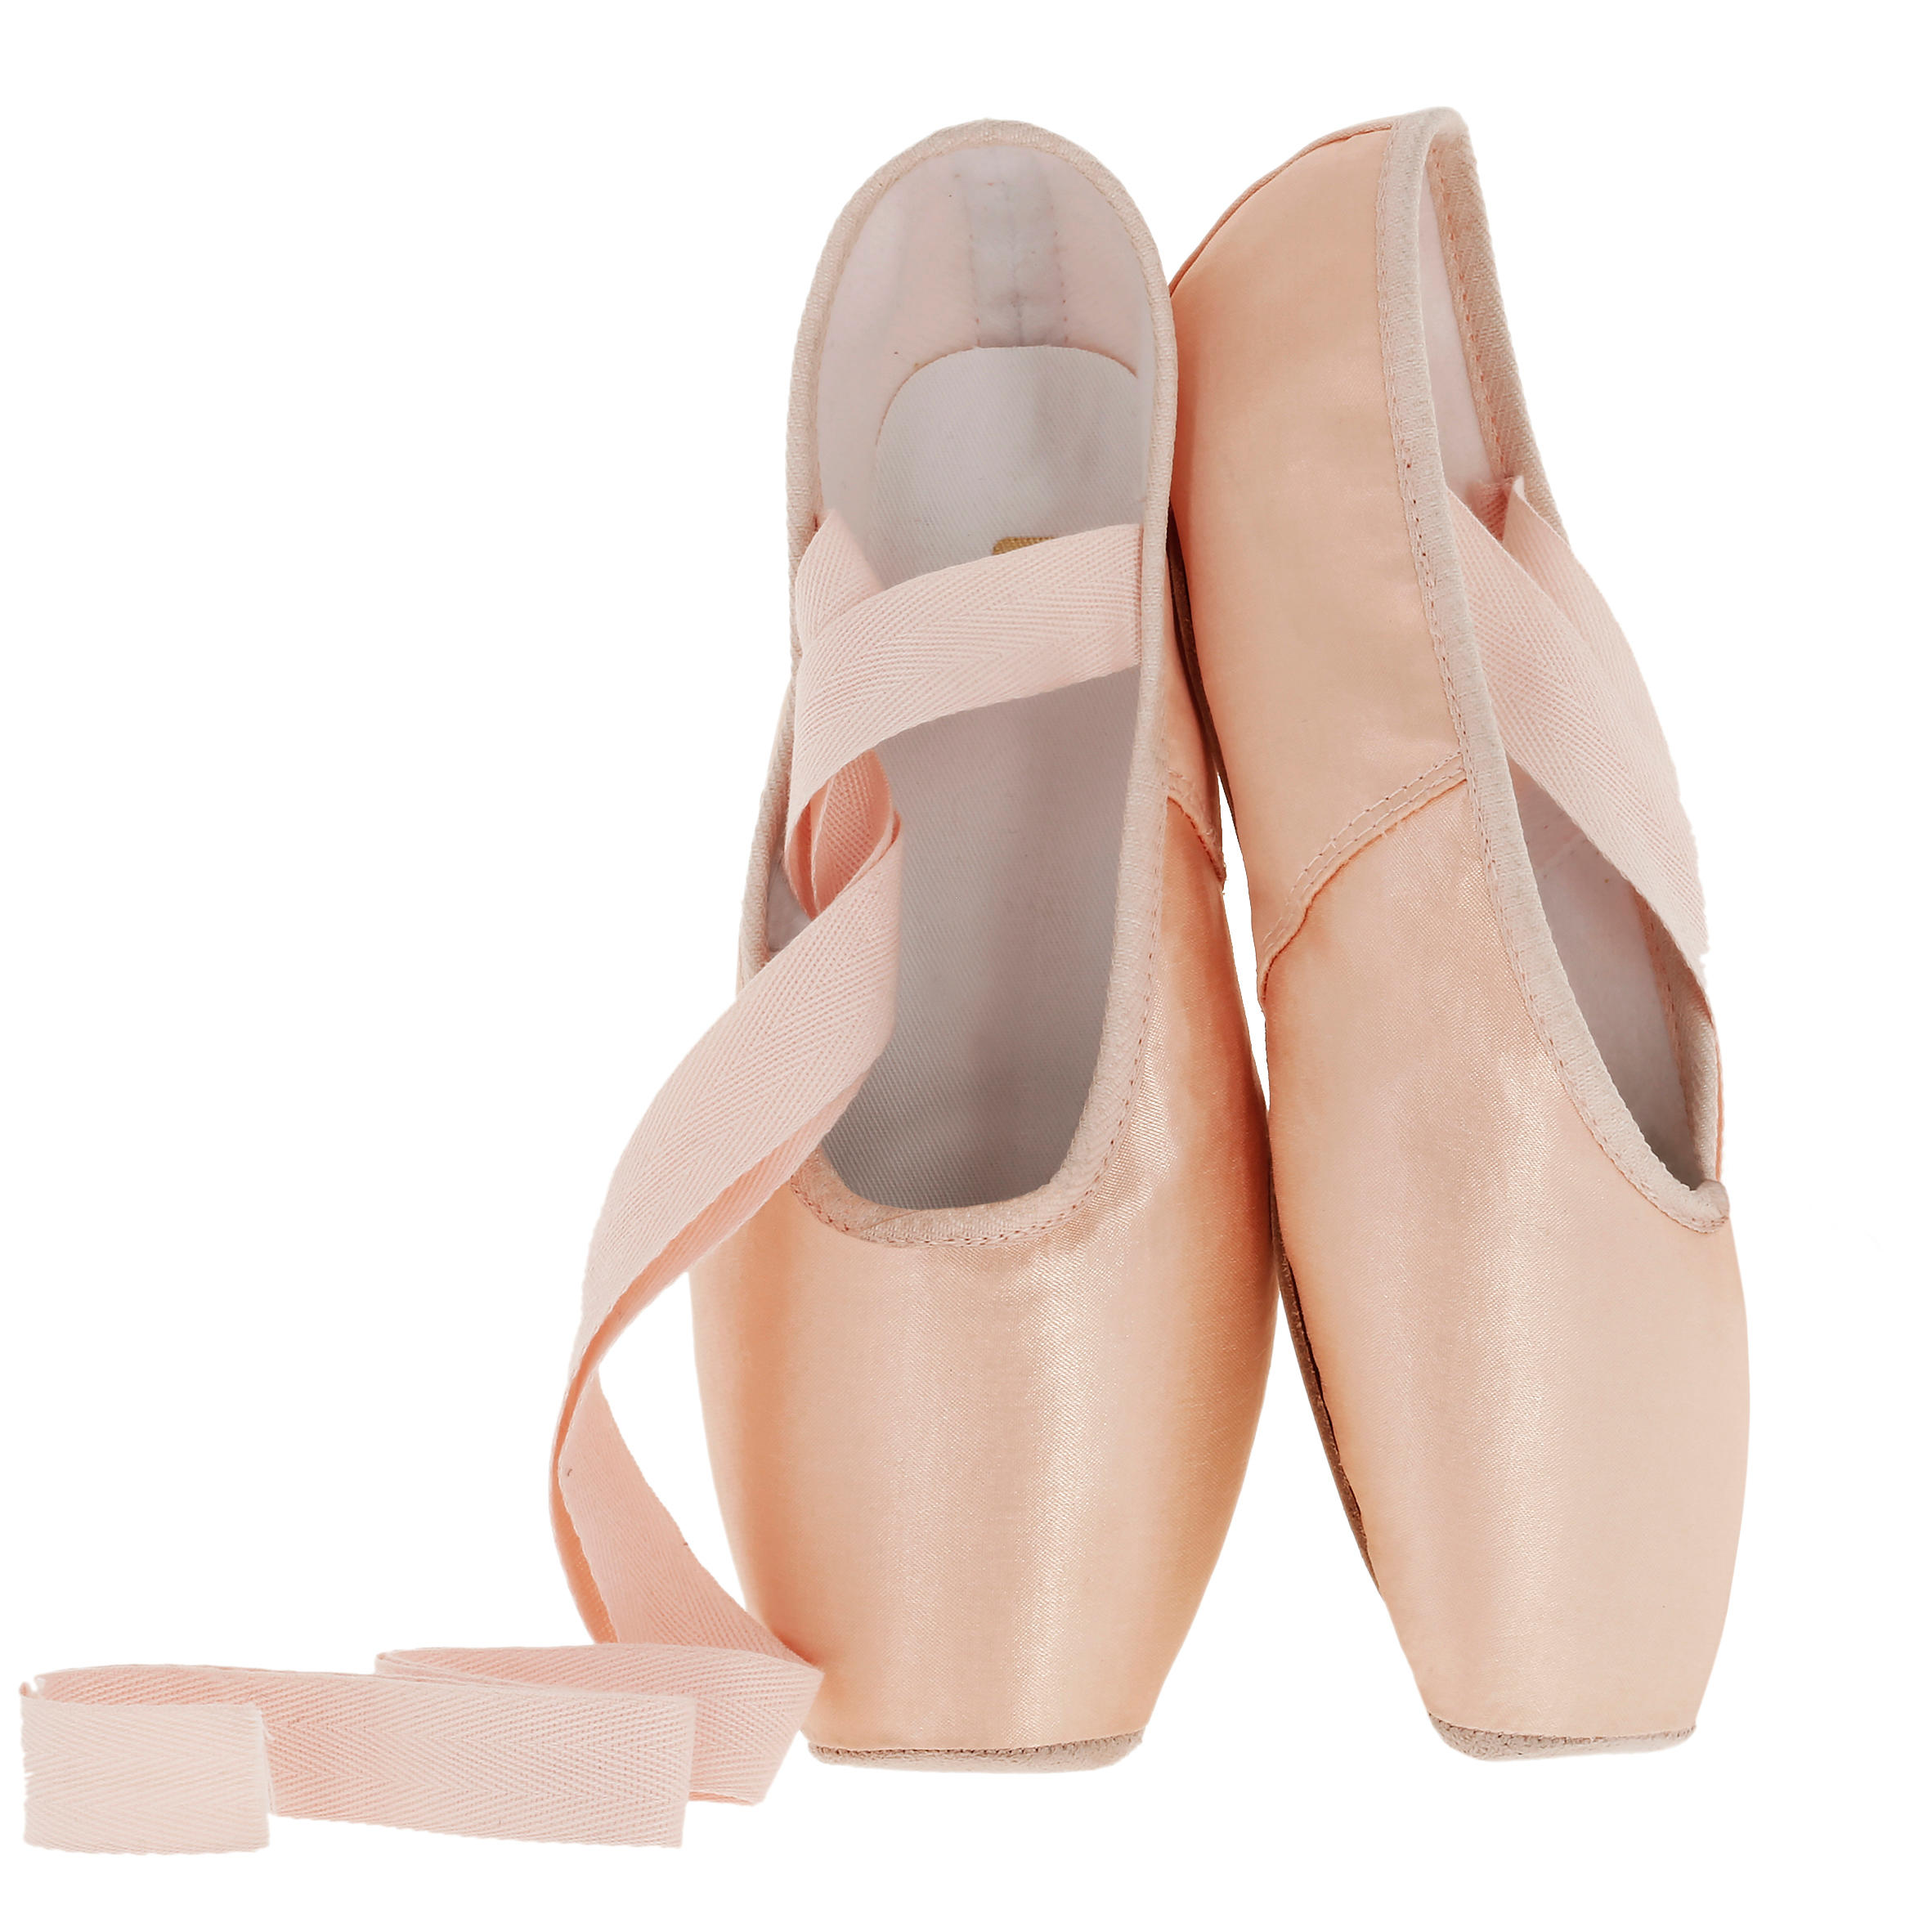 Relevé Girls' and Women's Pointe Shoes